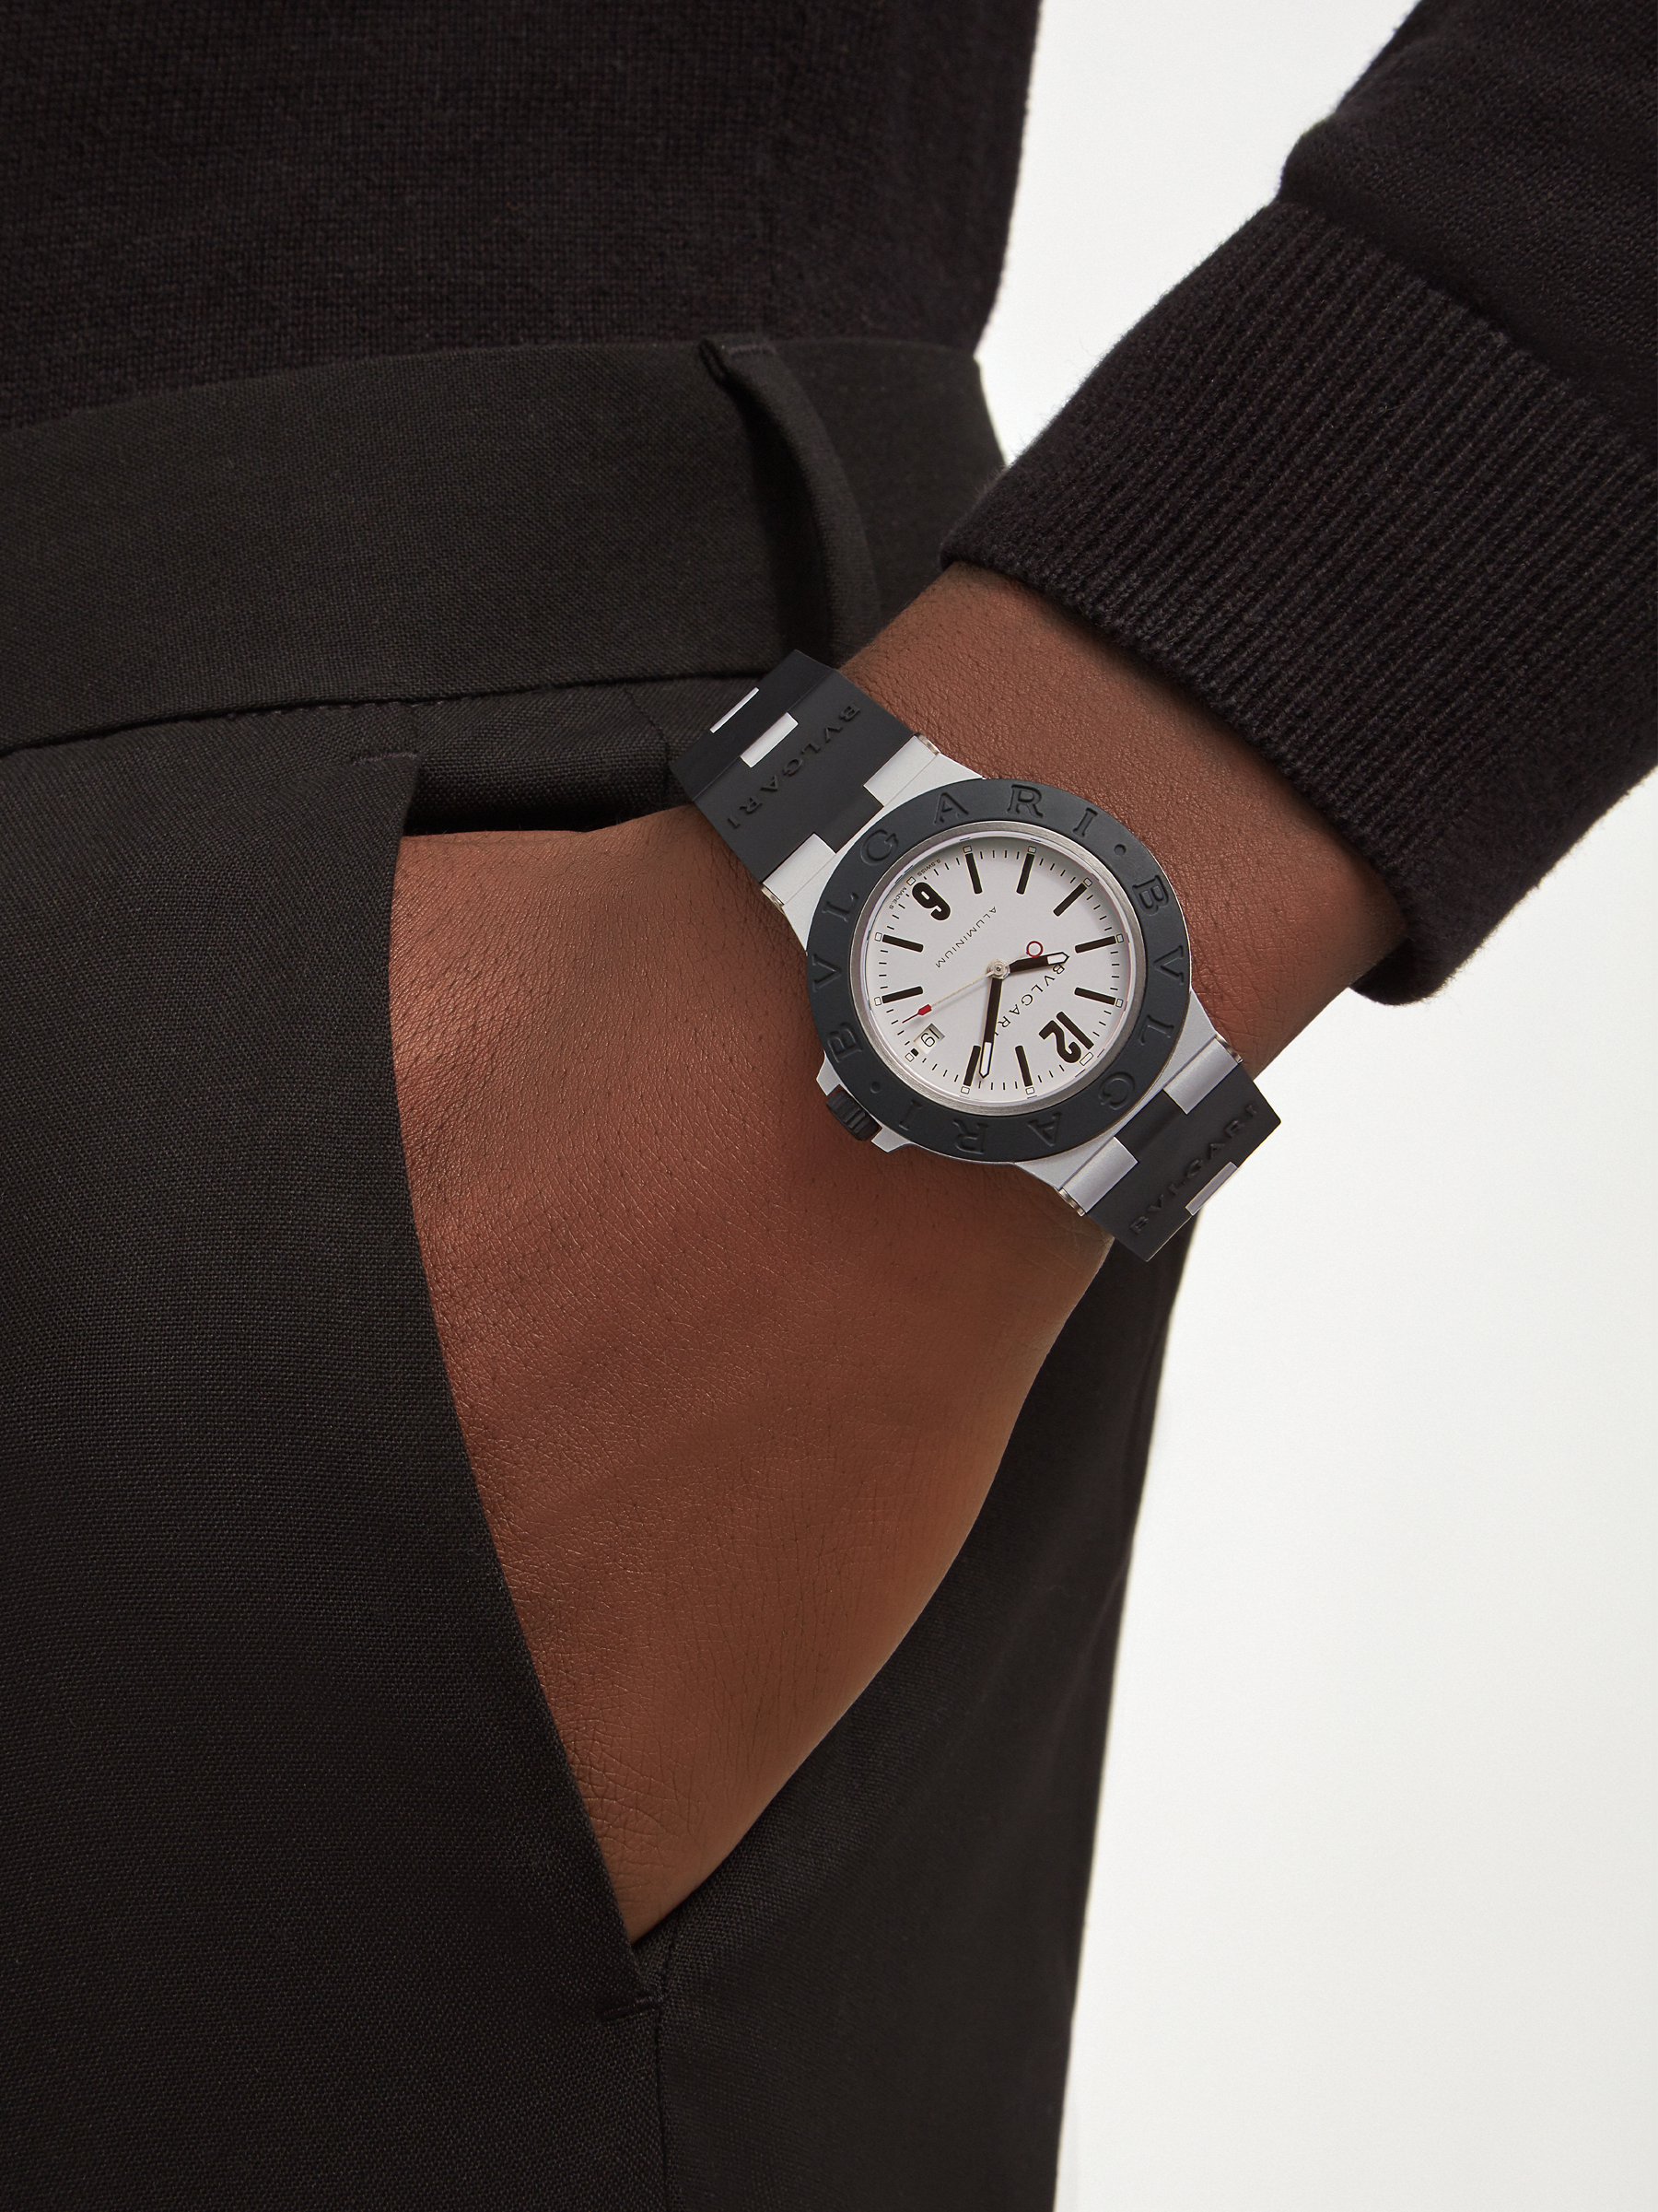 Bvlgari Aluminium watch with mechanical manufacture movement, automatic winding, 40 mm aluminium case, black rubber bezel with BVLGARI BVLGARI engraving, grey dial and black rubber bracelet. Water resistant up to 100 metres 103382 image 2